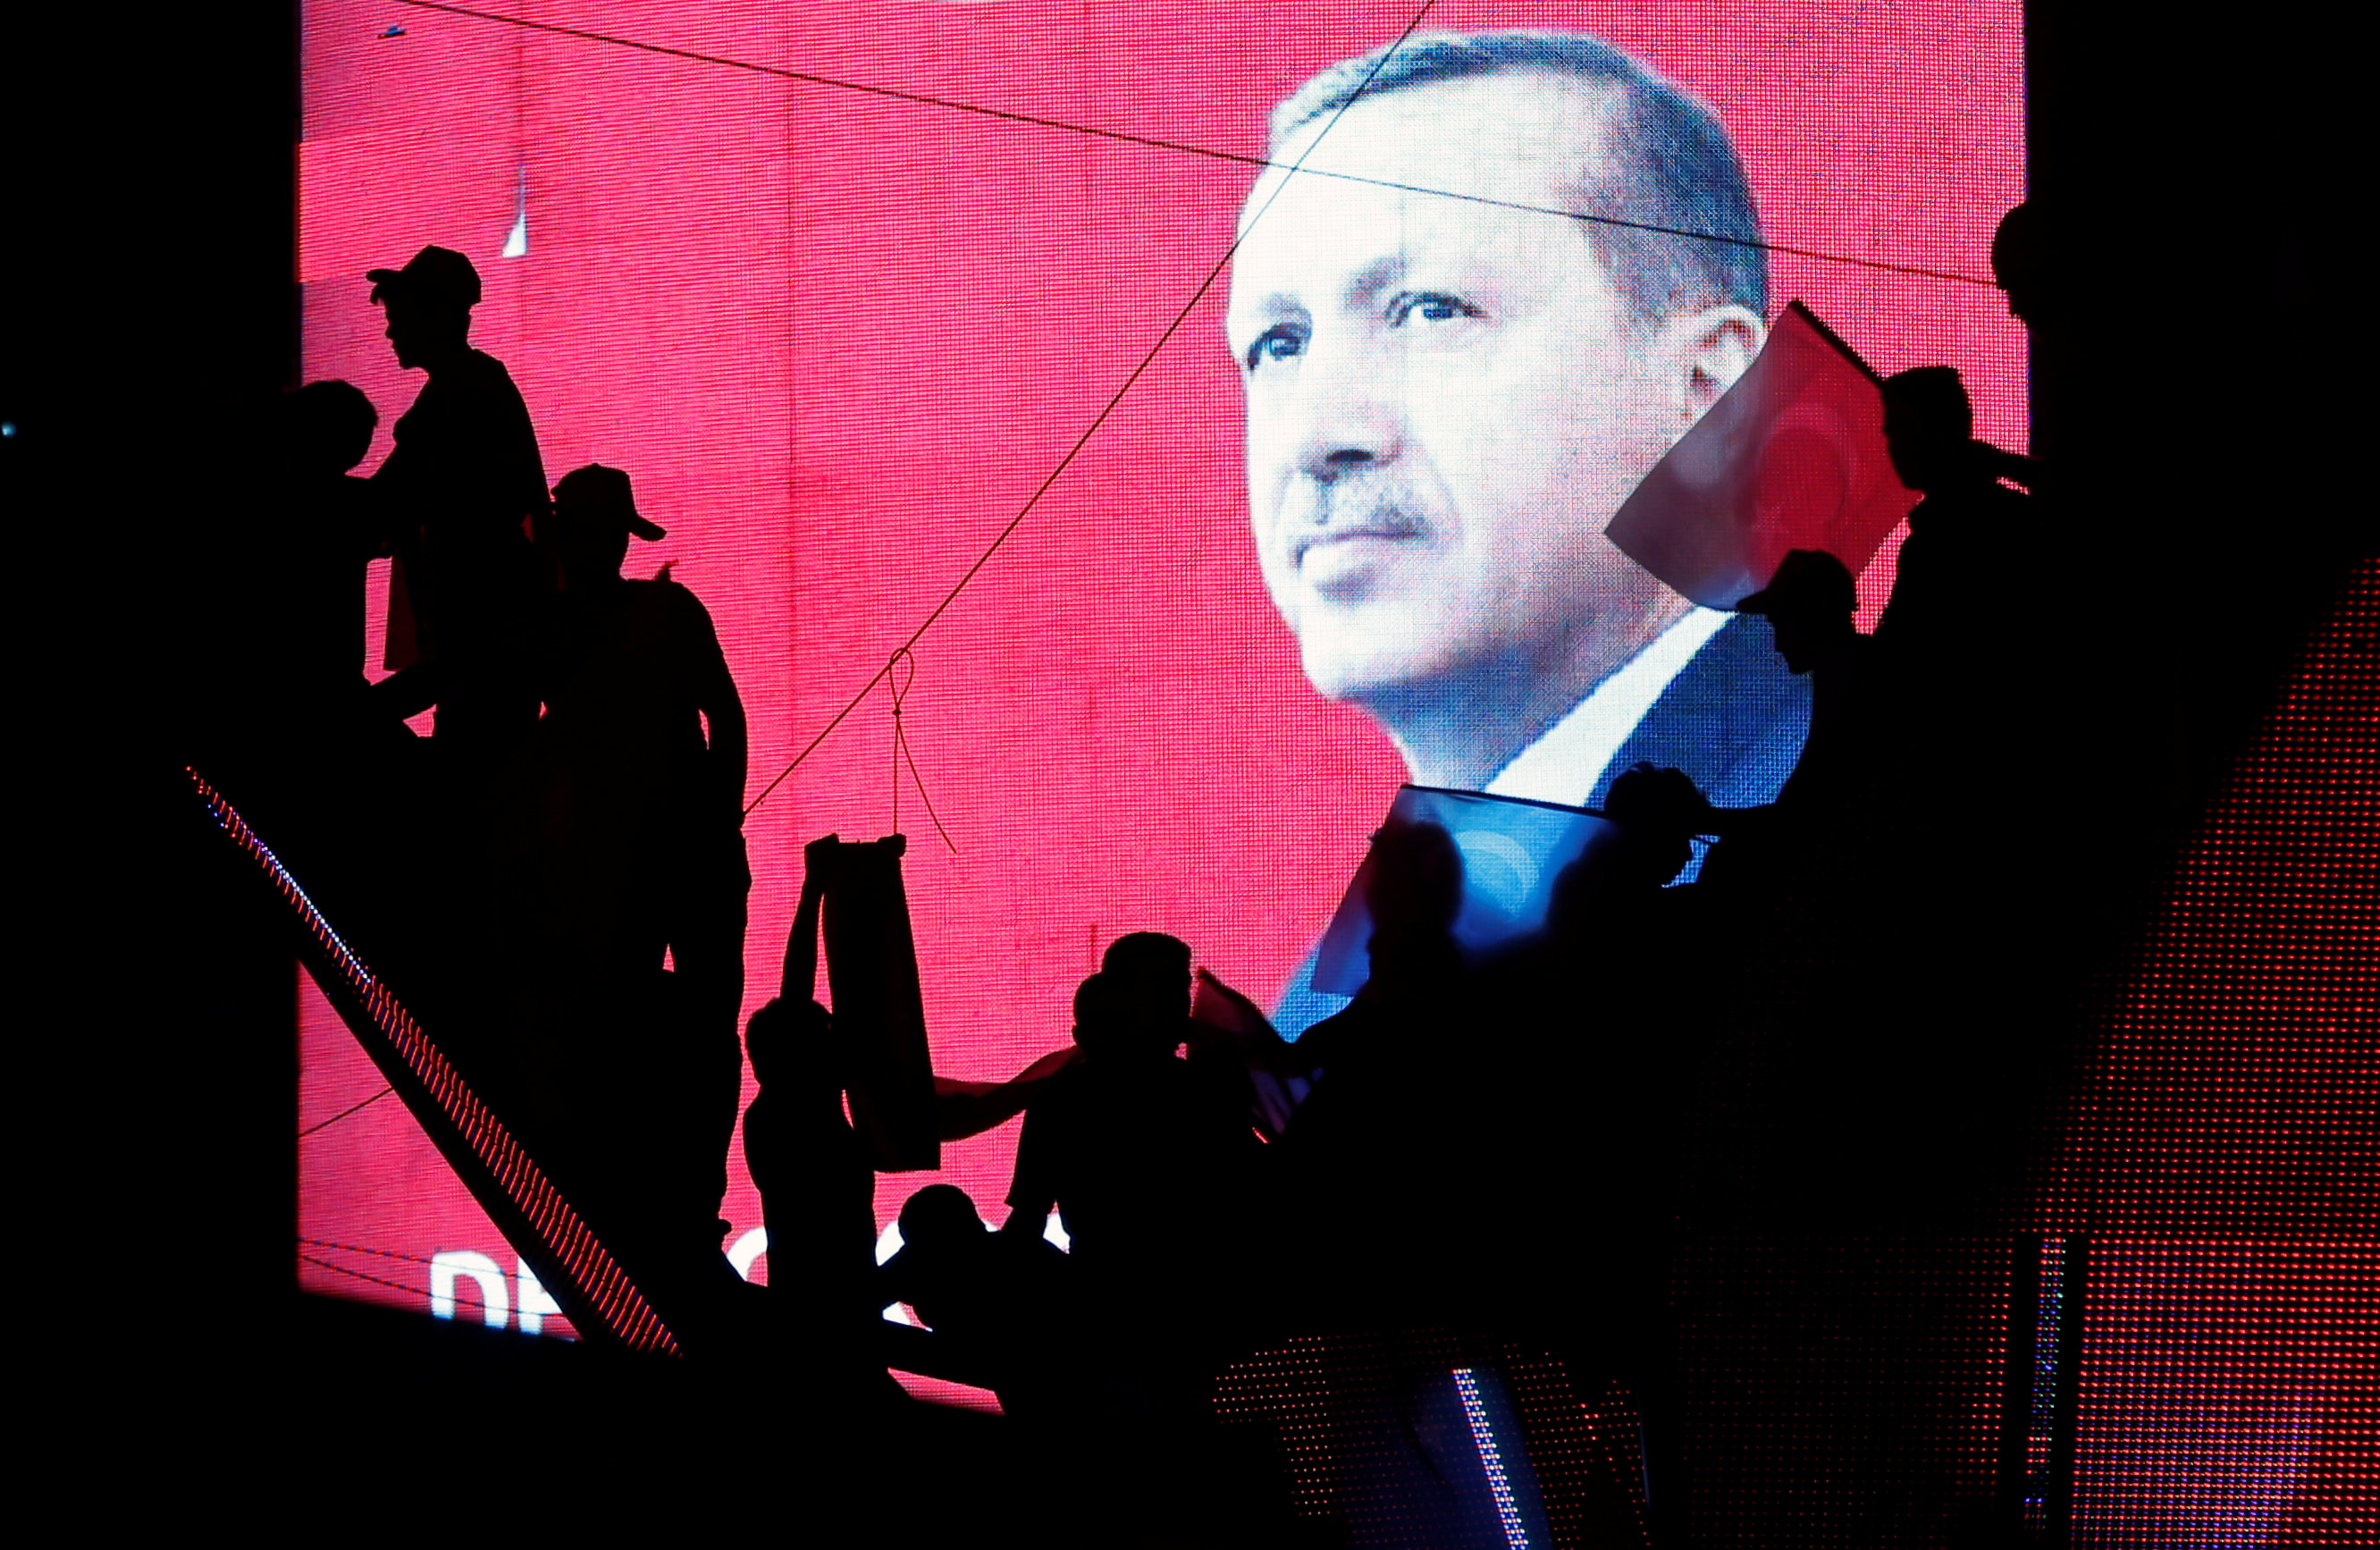 Turkish Supporters are silhouetted against a screan showing President Tayyip Erdogan during a pro-government demonstration in Ankara, Turkey, July 17, 2016. REUTERS/Baz Ratner